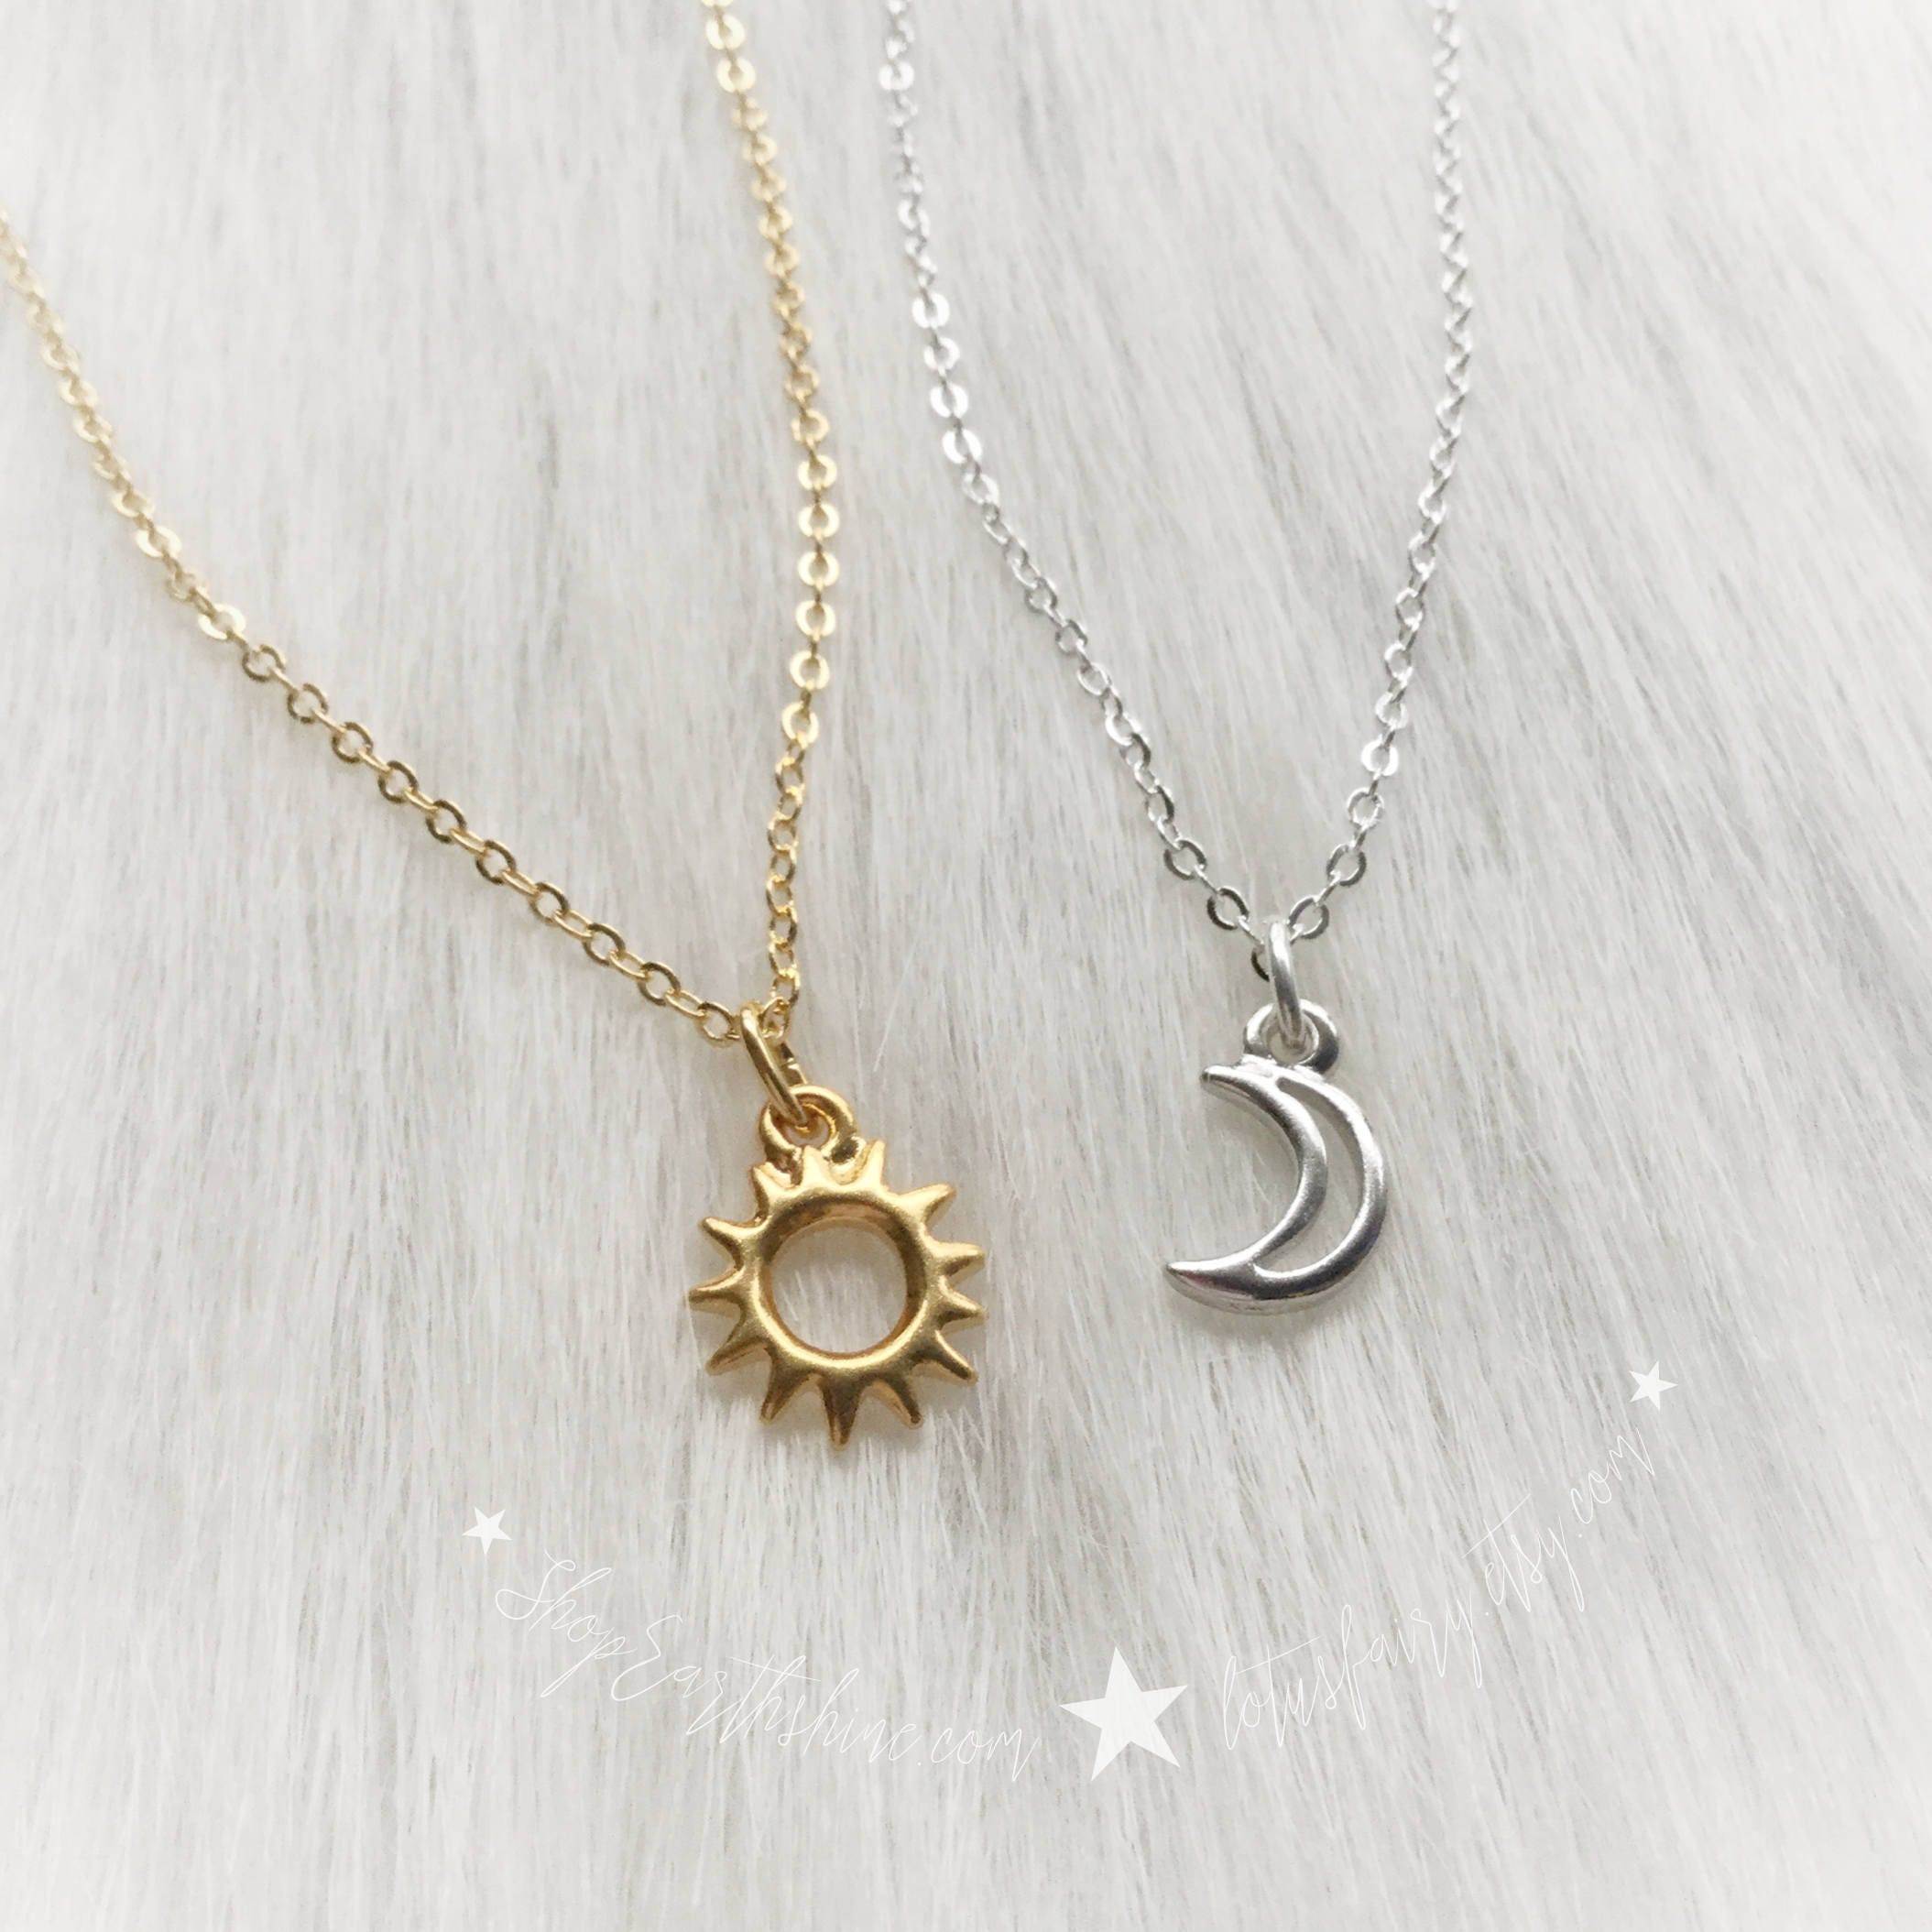 pin moon necklace and sun layering face